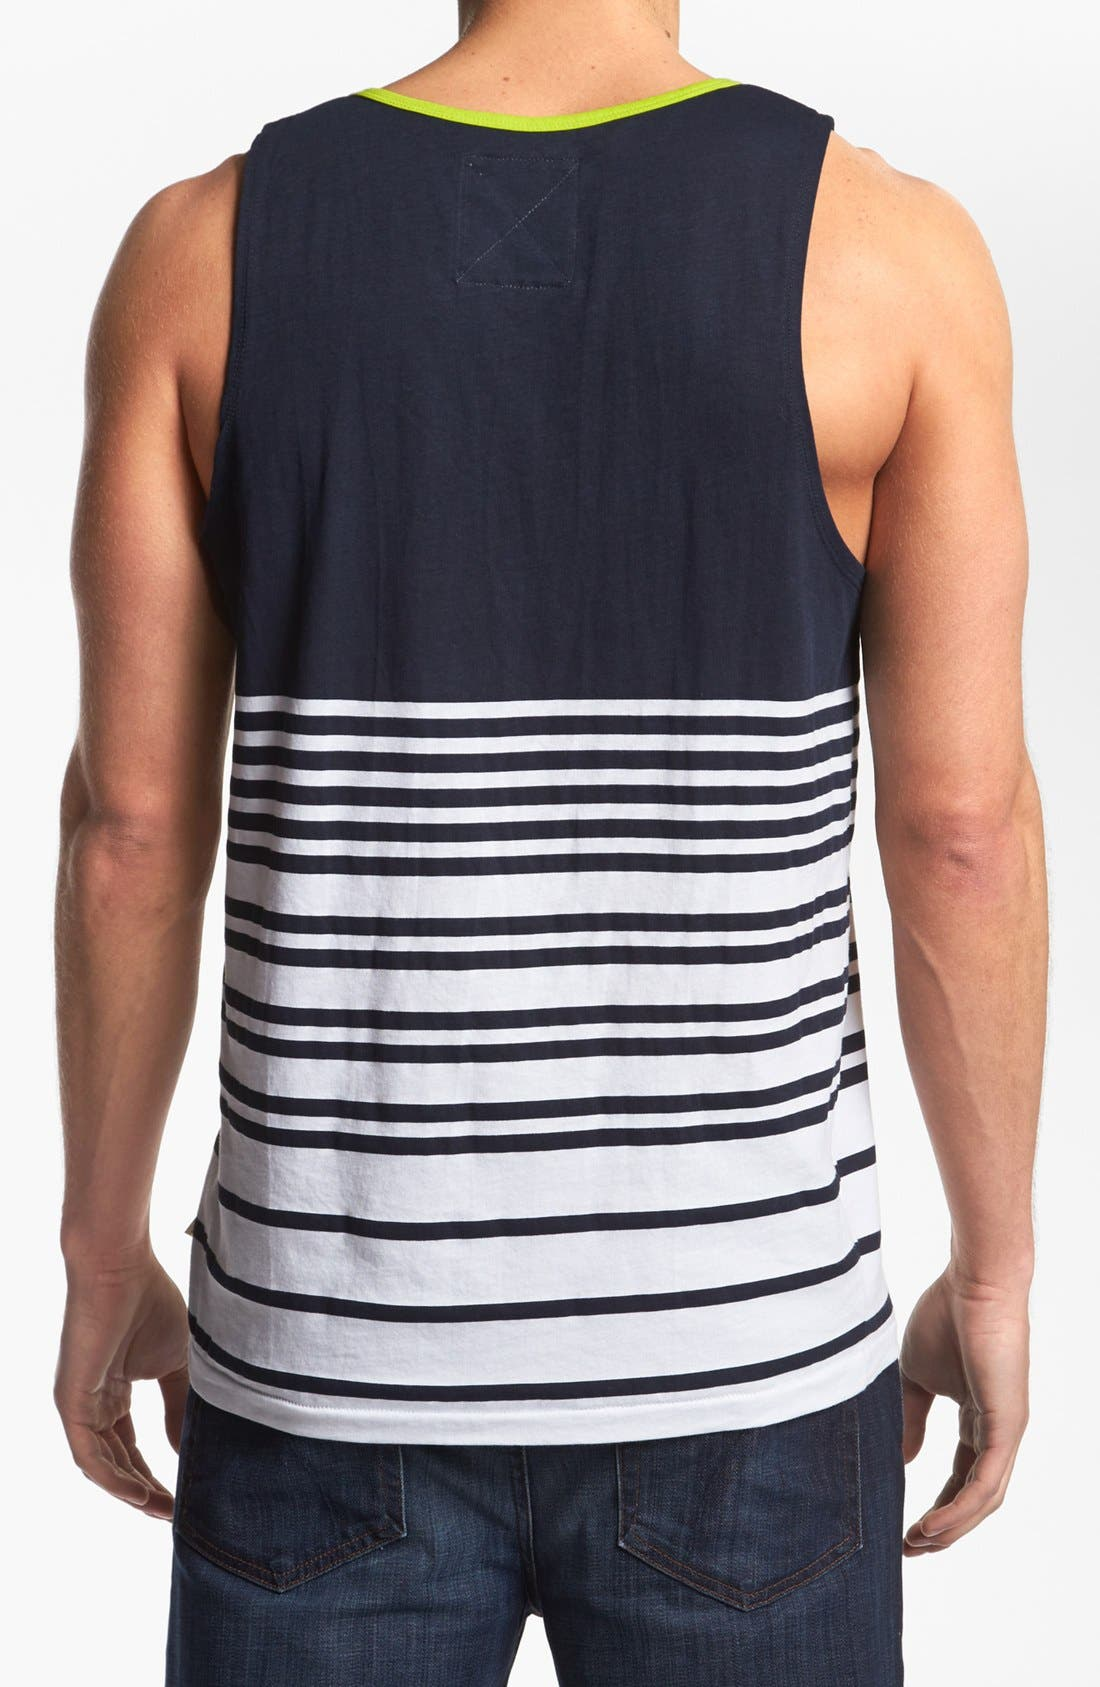 Alternate Image 2  - Vans 'Beeston' Tank Top